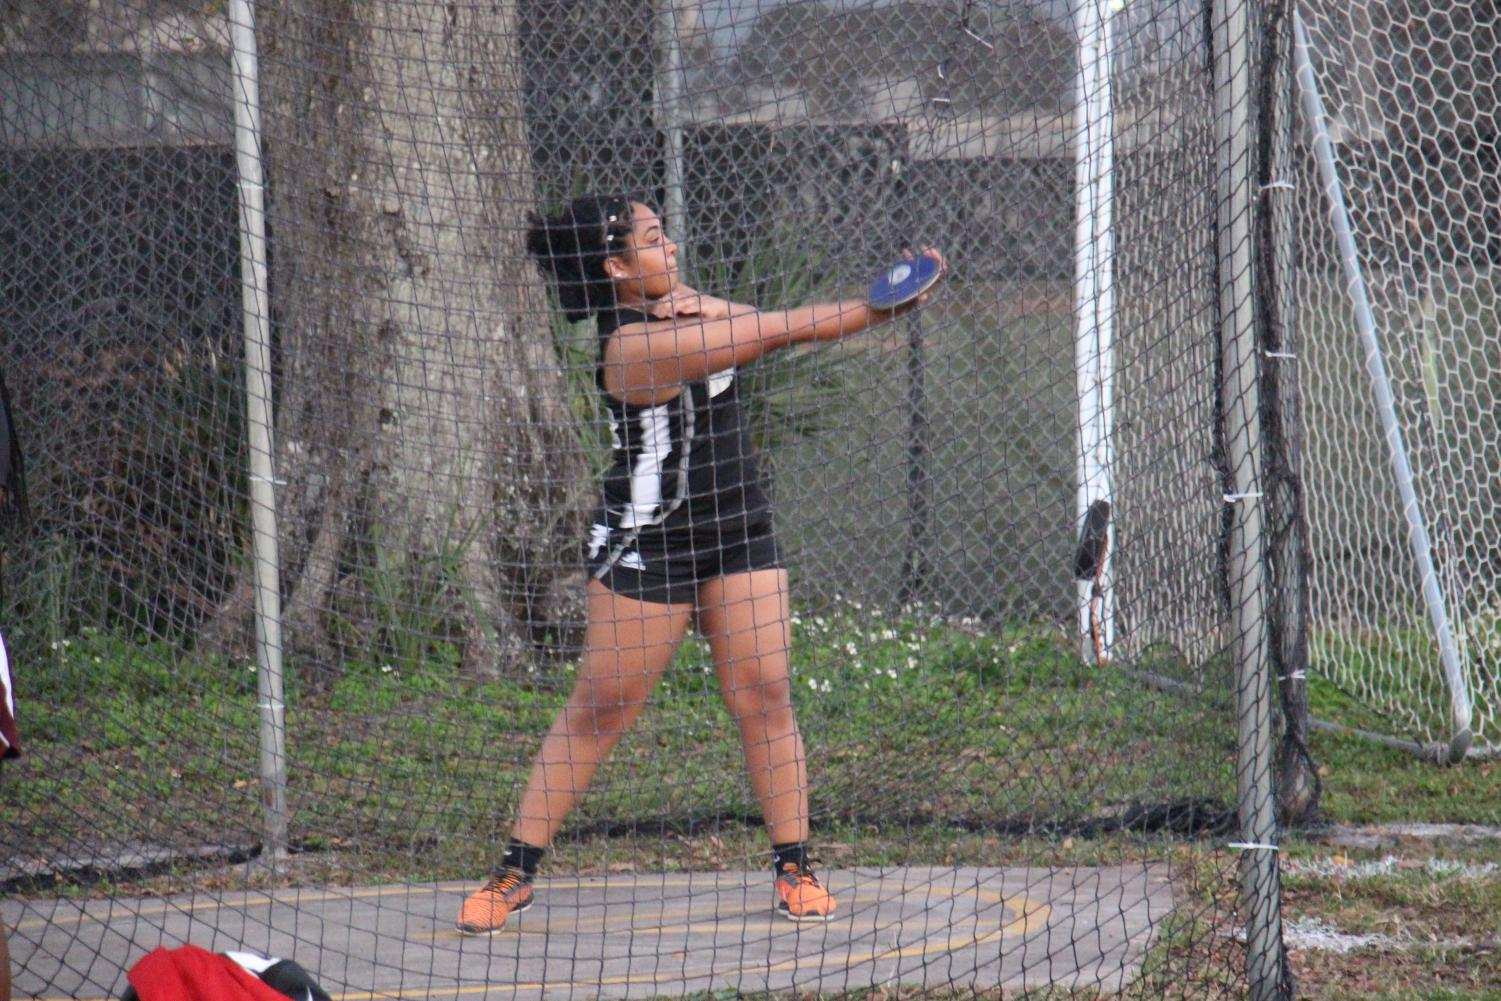 Danika Baro ('18) swings disc during her turn at the season opener at home, February 19.